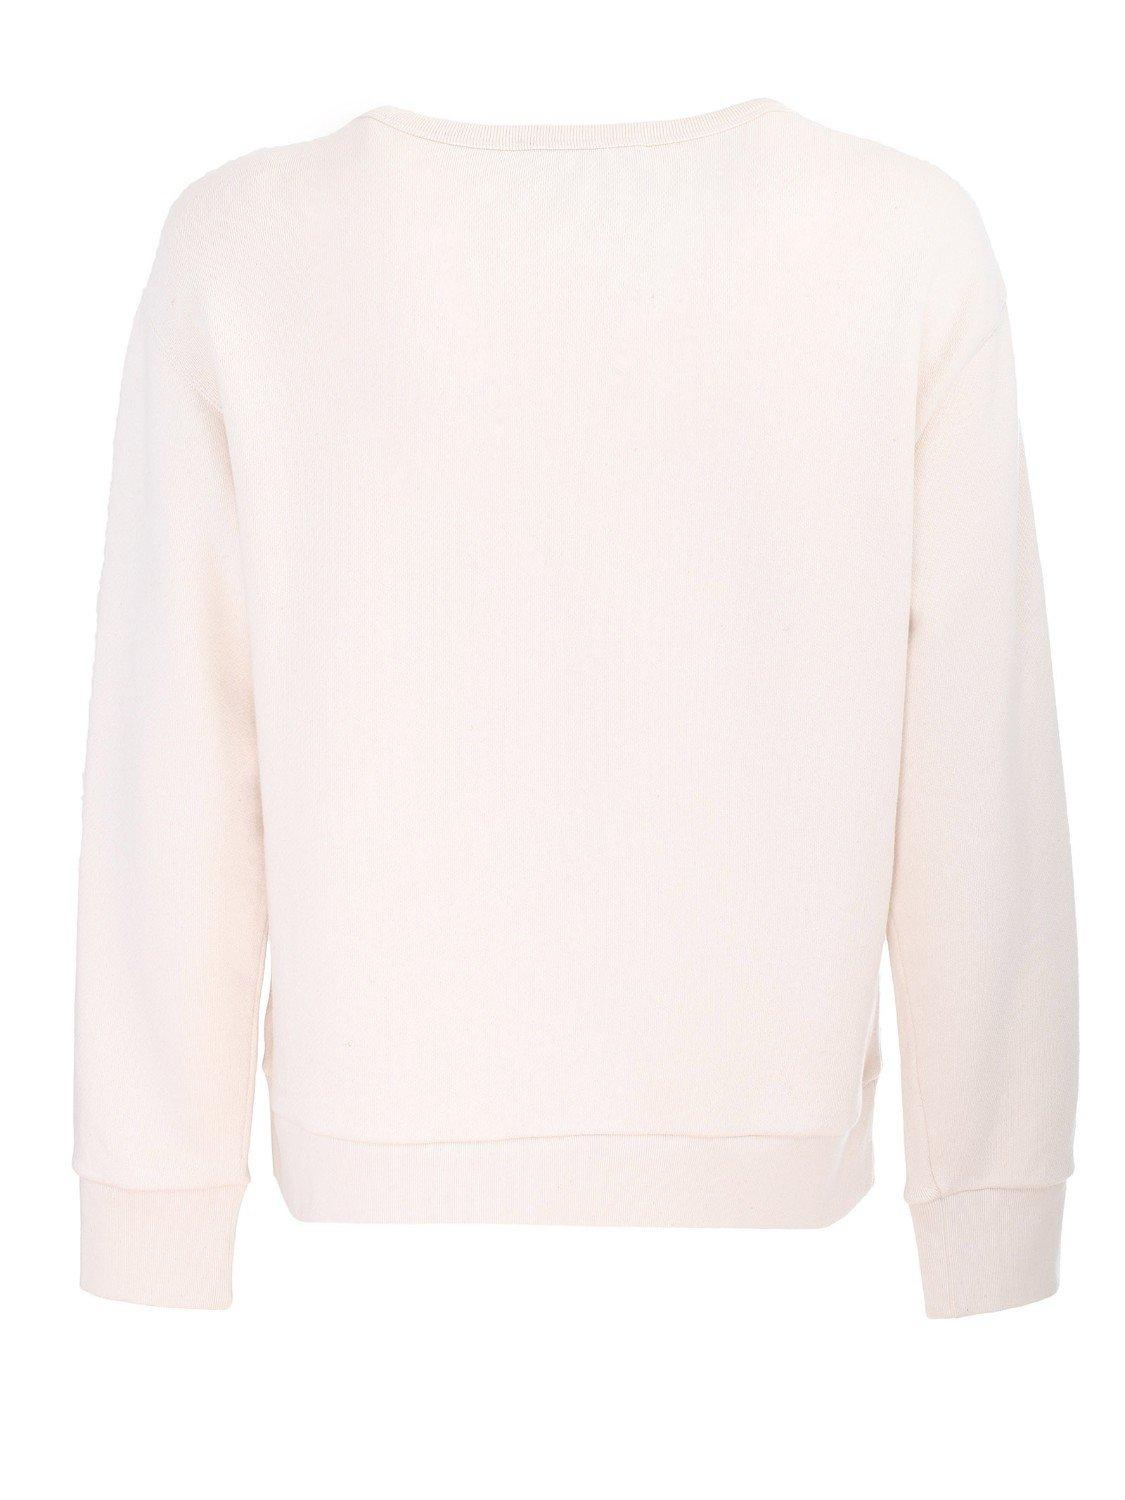 5ead97ac Lyst - Gucci Wing Jockey Cotton Sweatshirt in White for Men - Save 30%